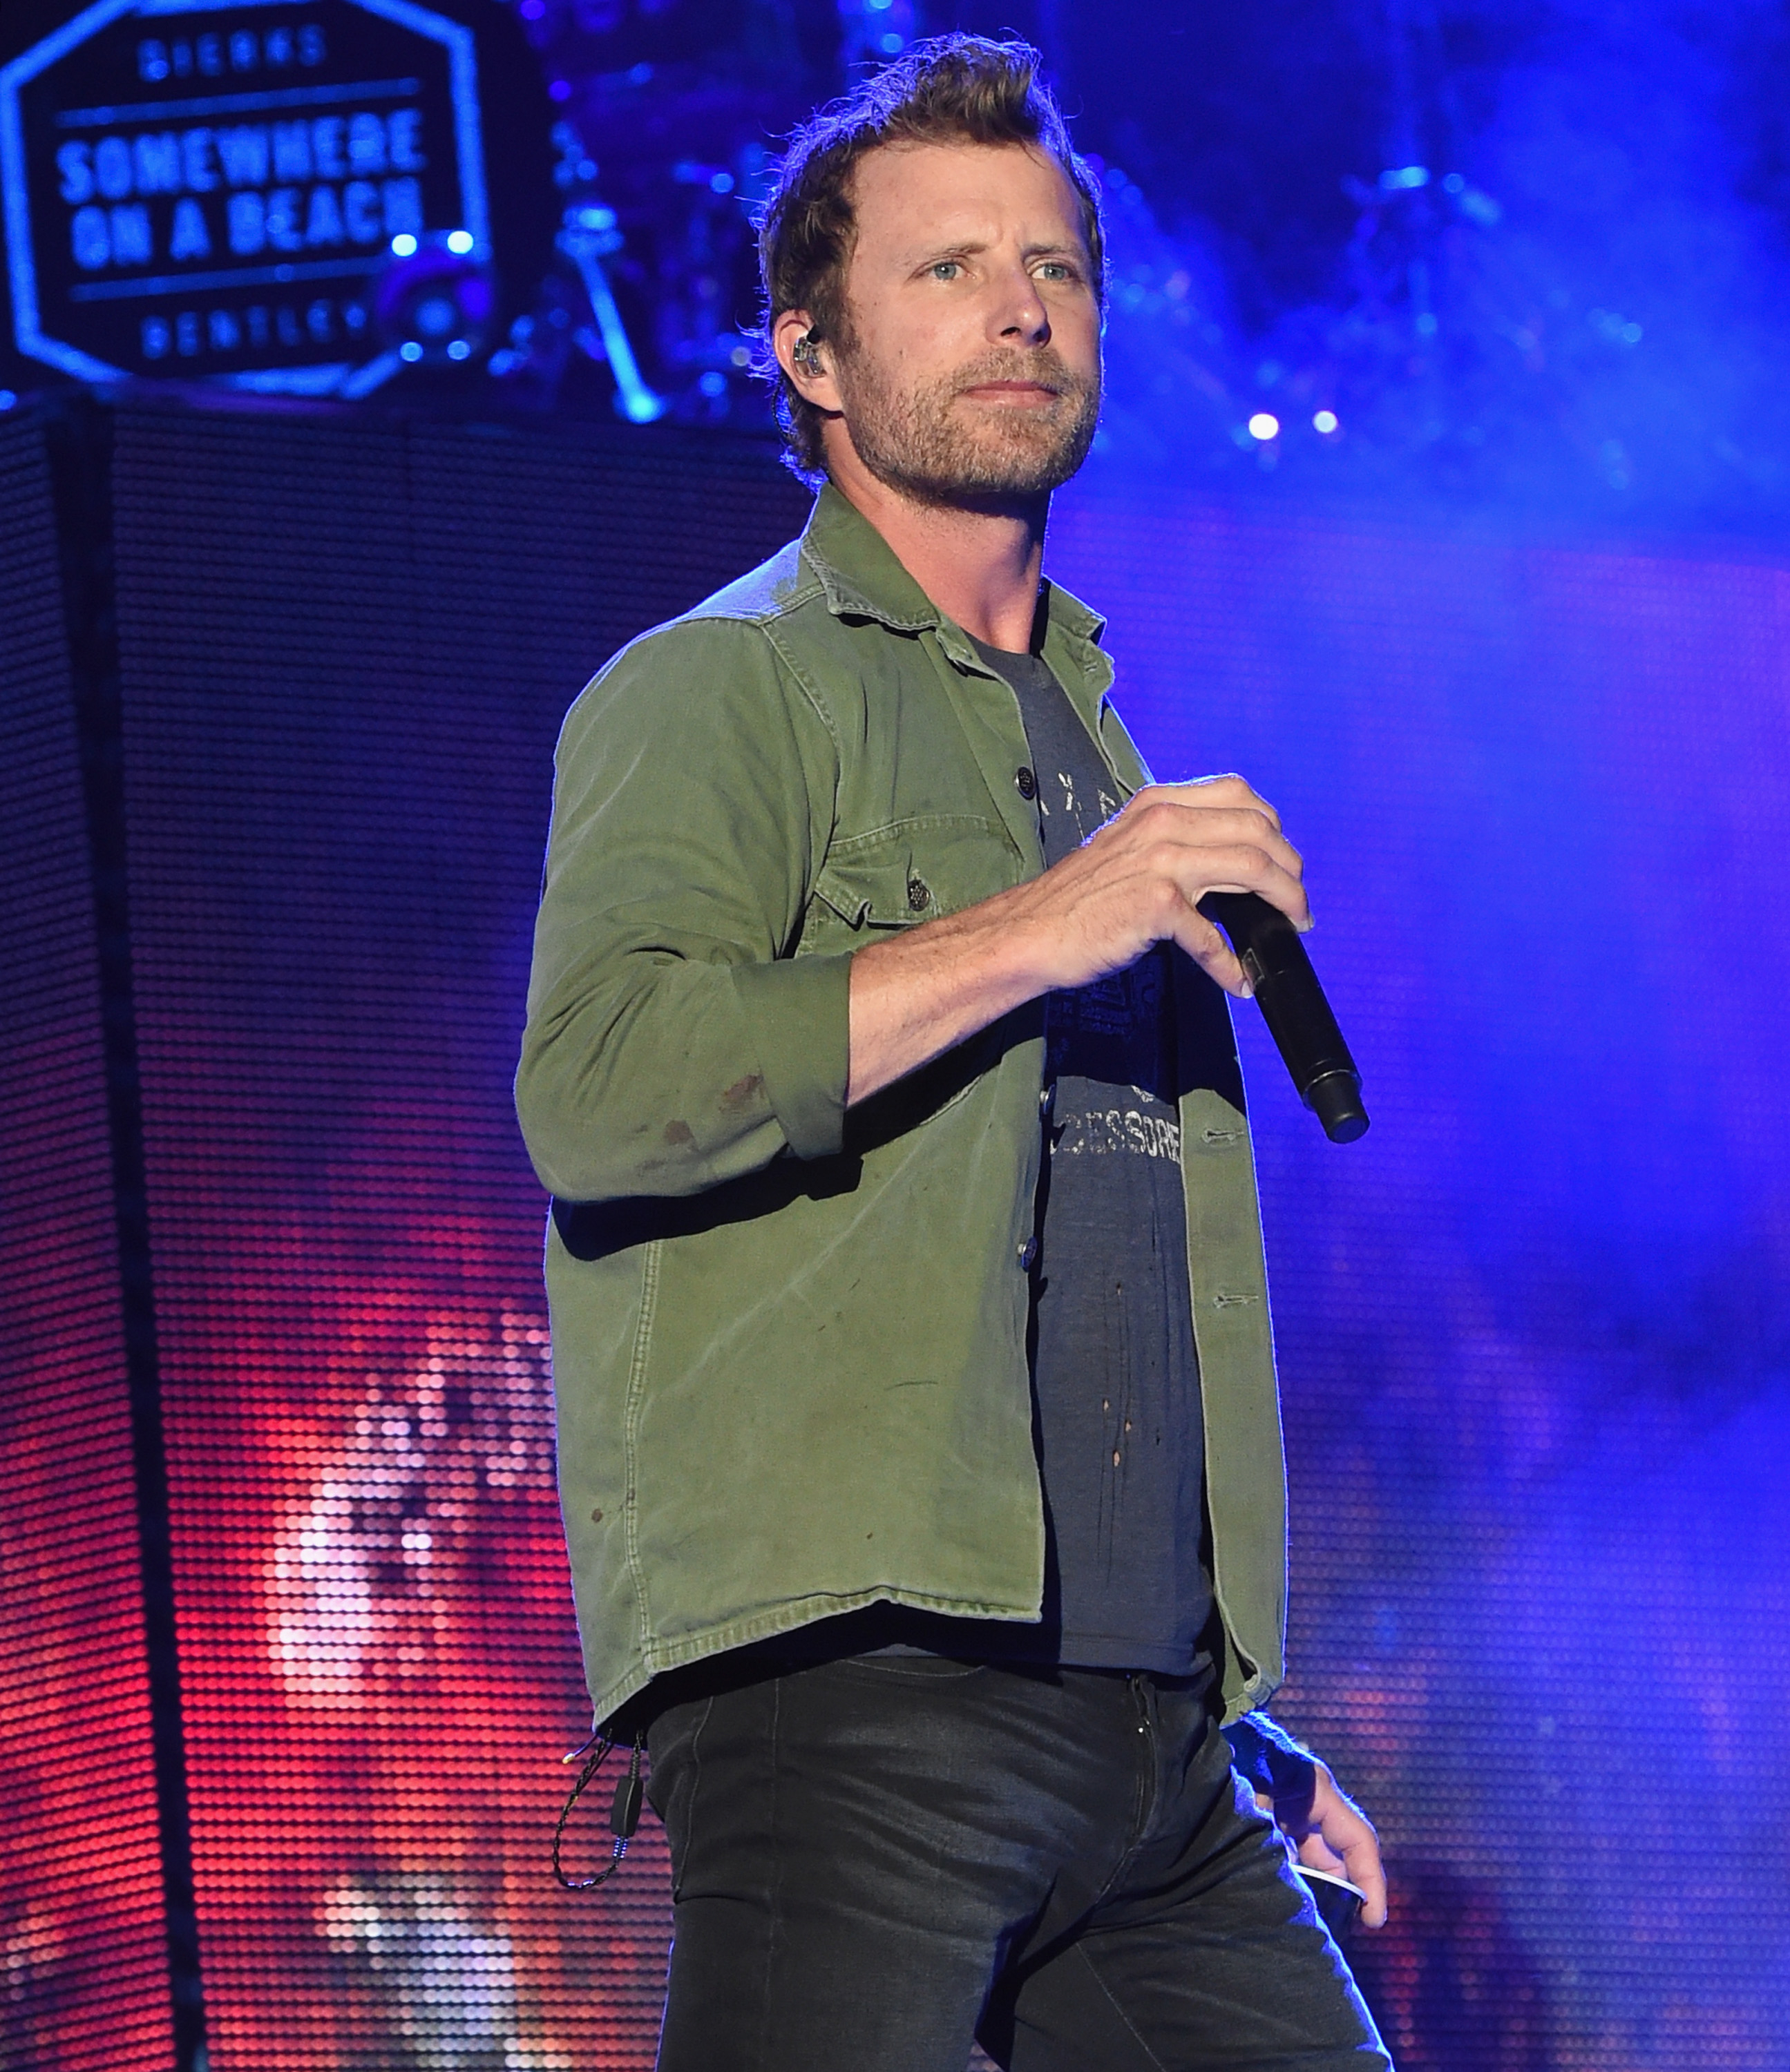 Dierks Bentley On CMA Nominations: 'Like A Good Whiskey